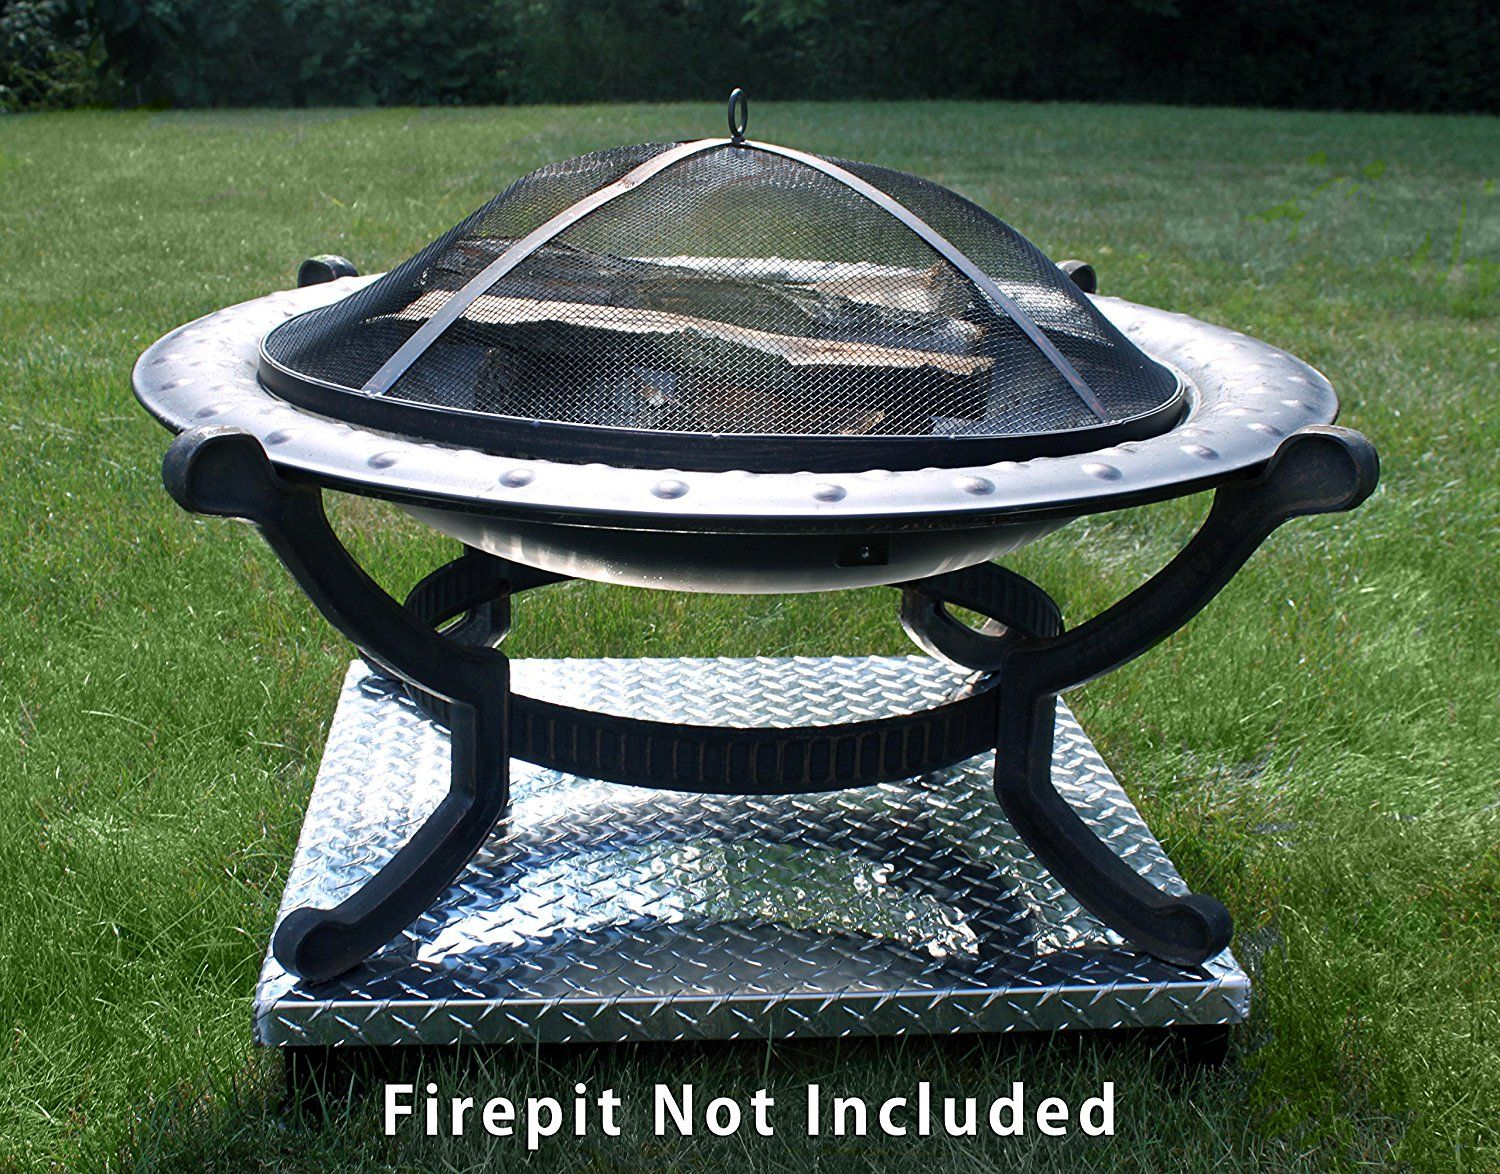 Amazon Com Deck Defender Amp Grass Guard Fire Pit Heat Shield Patio Lawn Amp Garden Fire Pit On Grass Fire Pit Fire Pit Heat Deflector